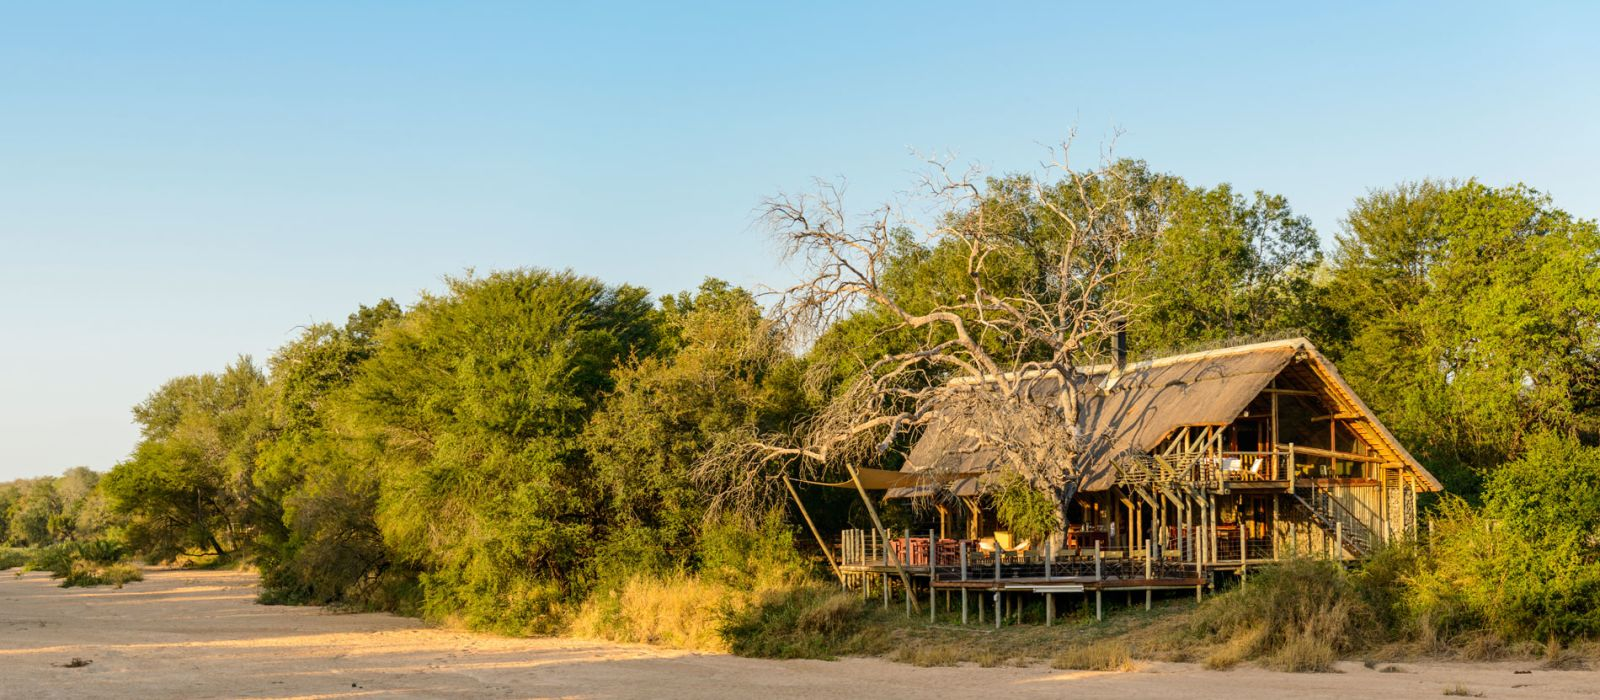 Hotel Rhino Post Safari Lodge South Africa